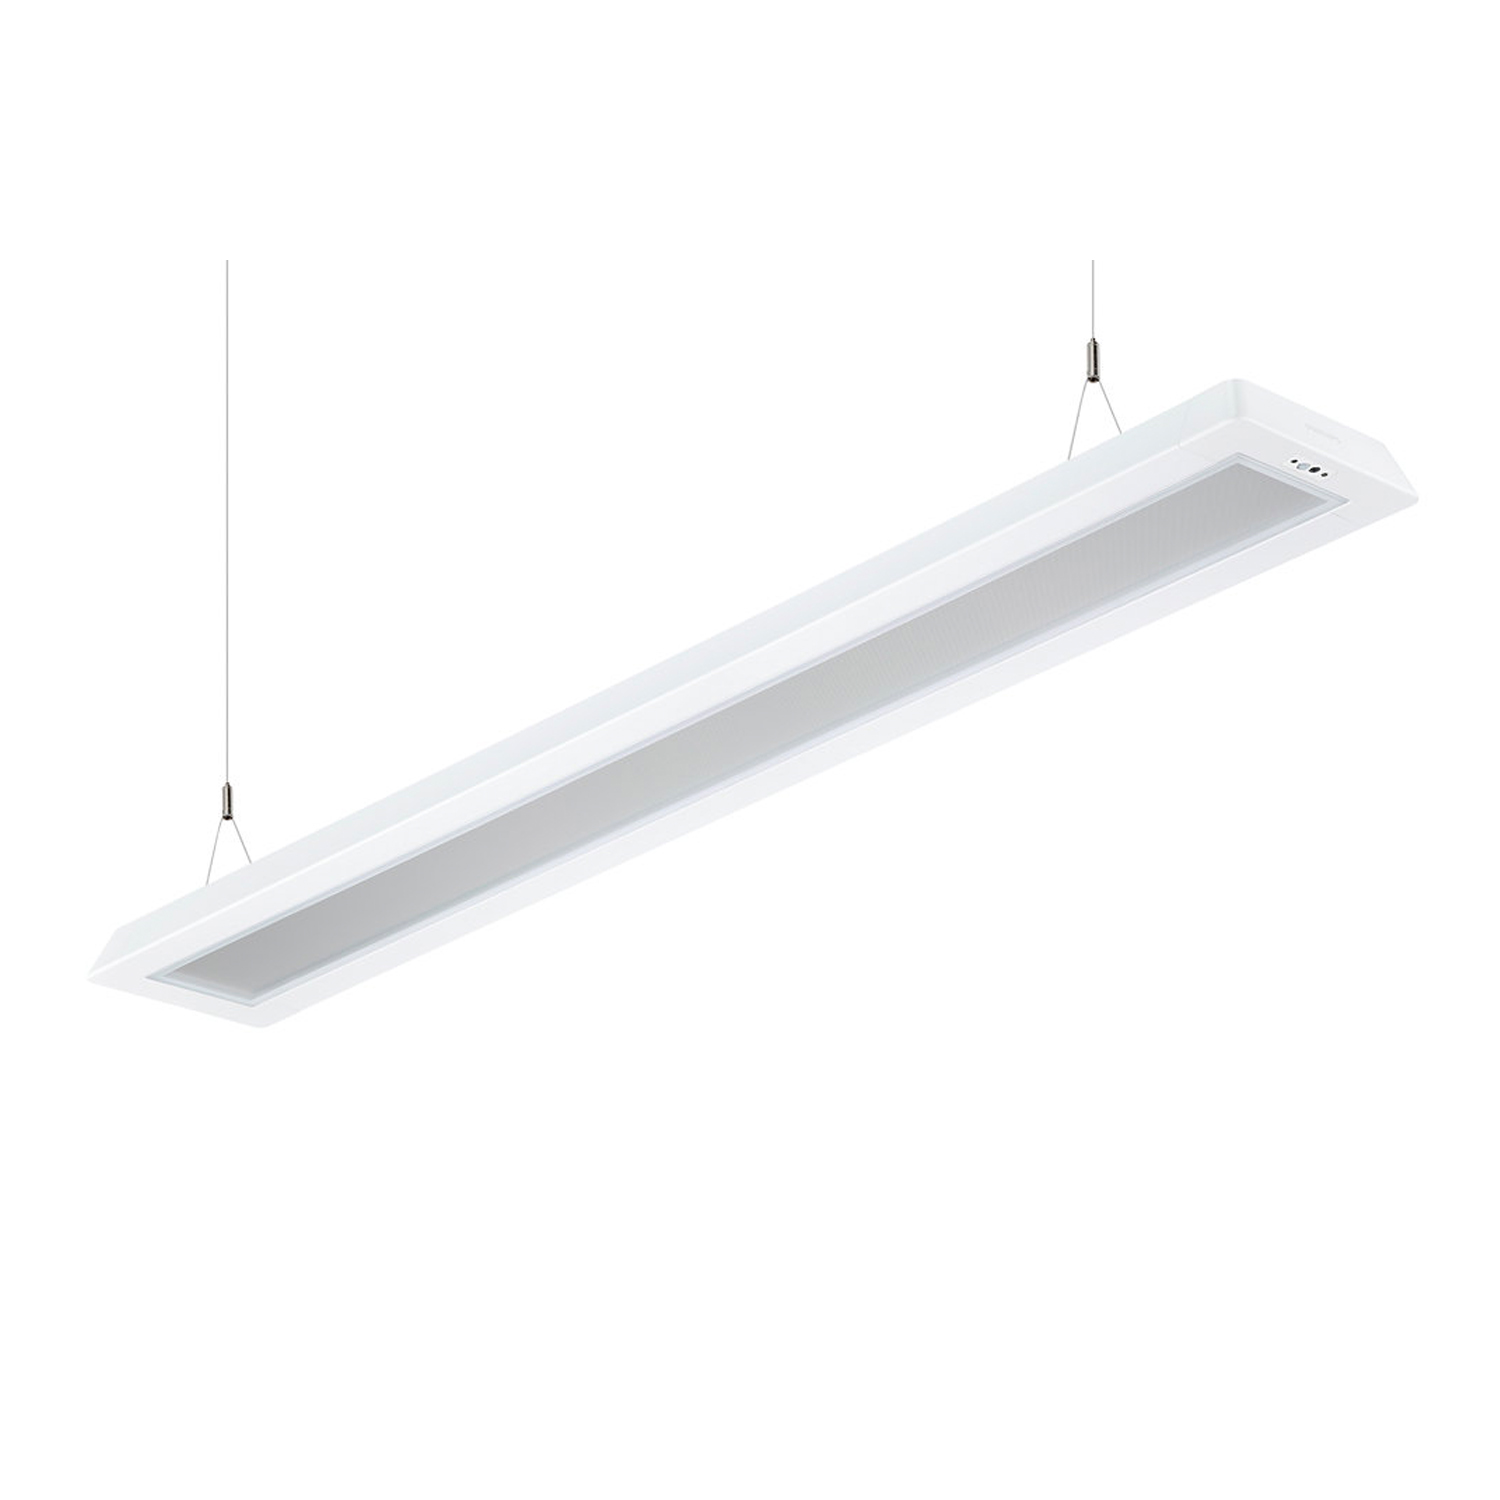 Philips FlexBlend LED Panel SP340P 31.5W 940 4200lm - Cool White